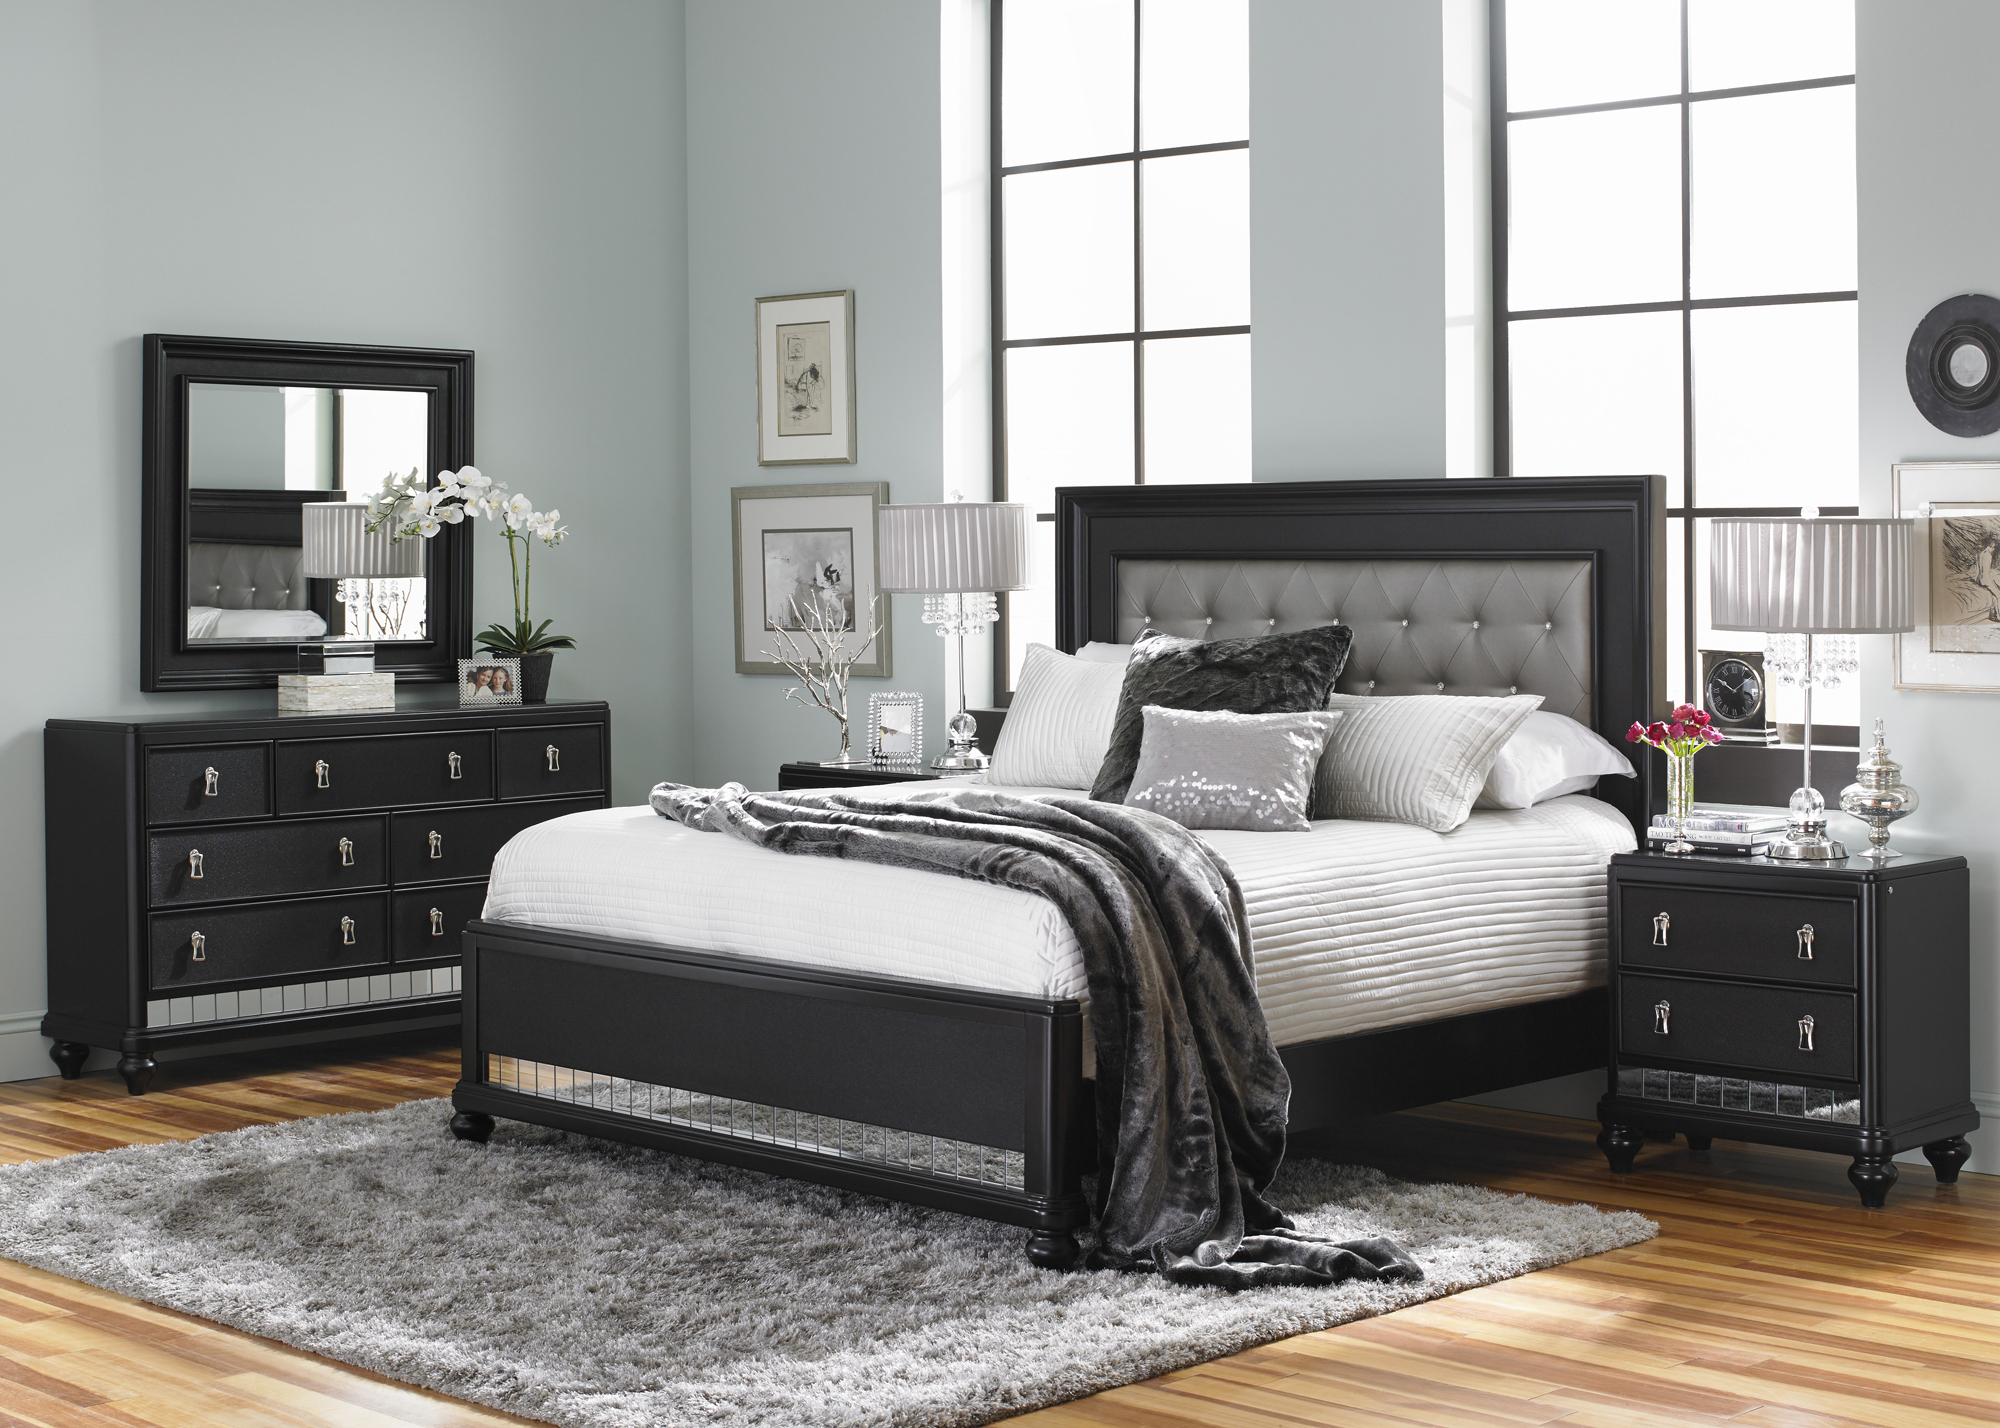 Diva Queen Upholstered Bed in Midnight Black